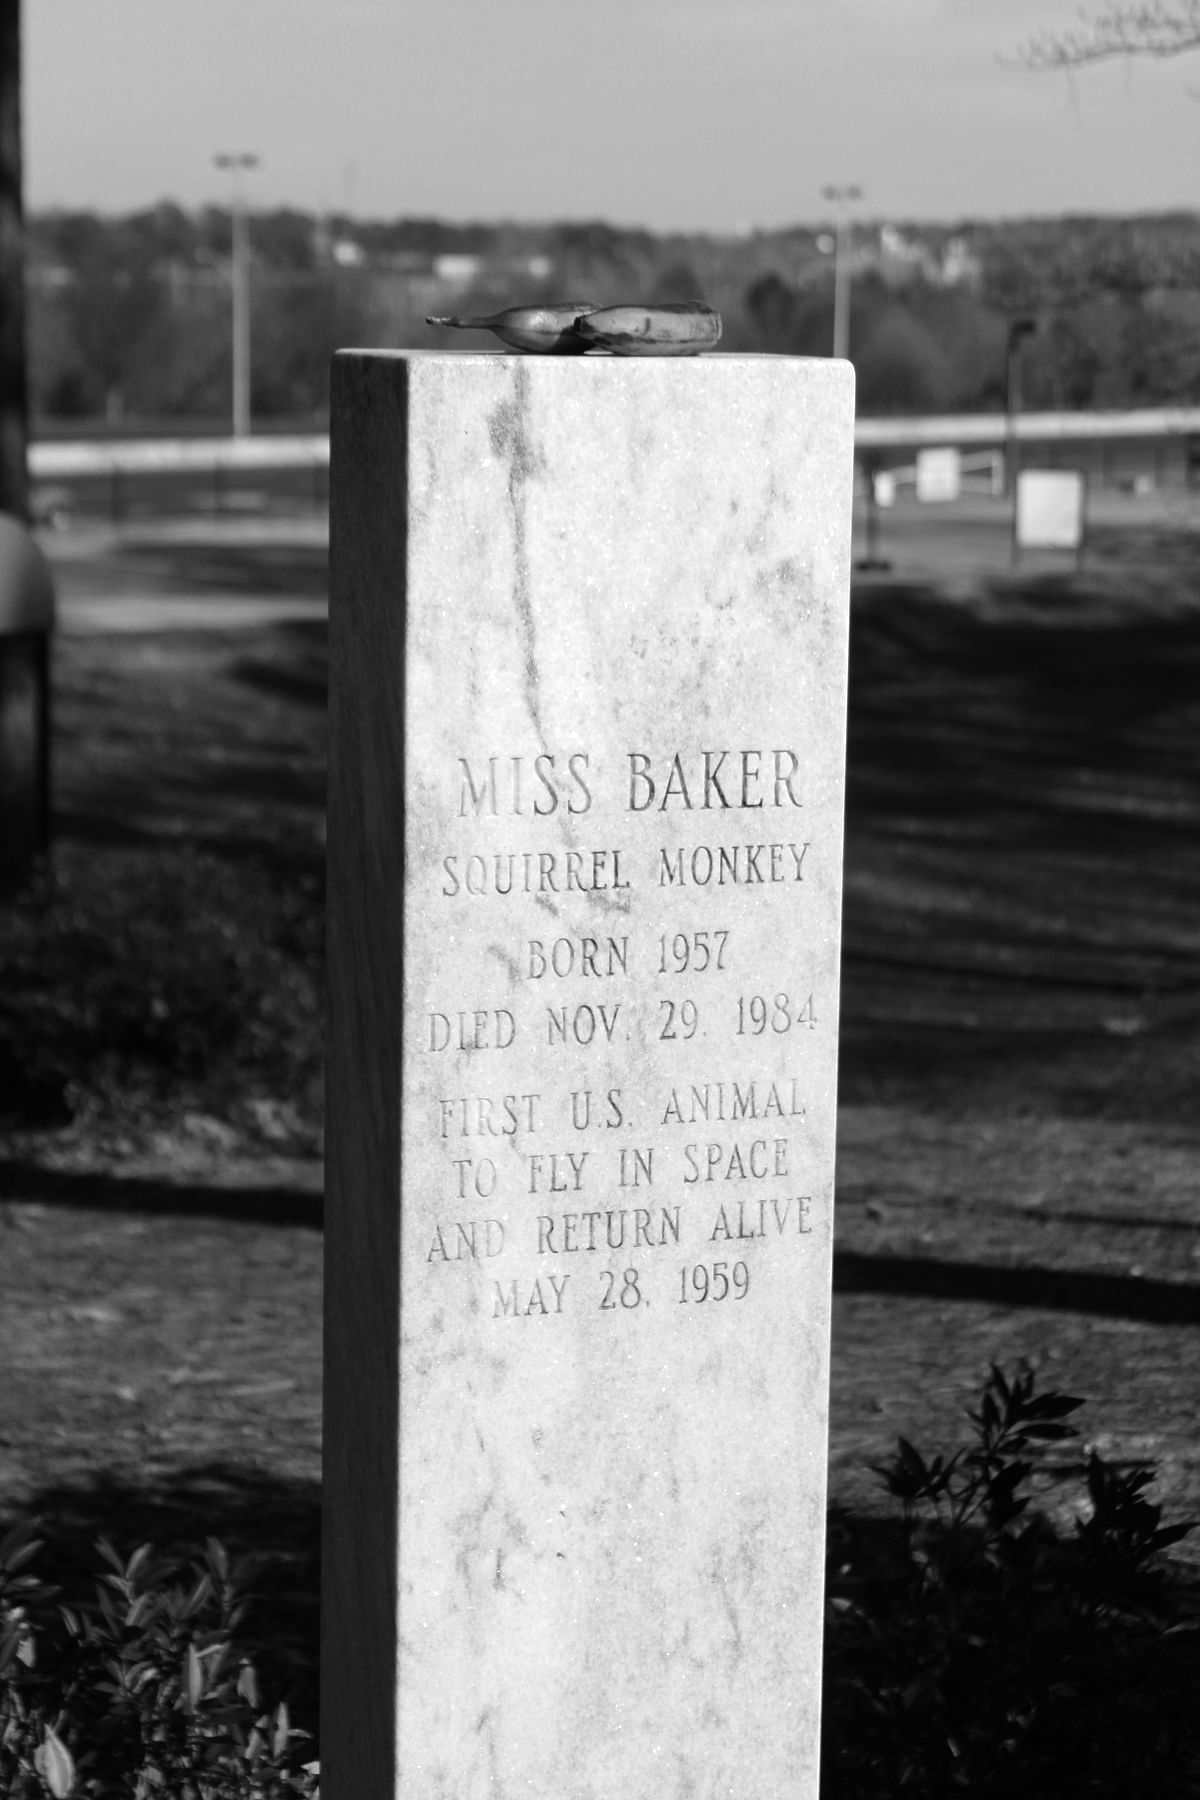 Miss Baker's gravestone frequently has bananas on top left by visitors. (Photo Courtesy: Wikimedia Commons)